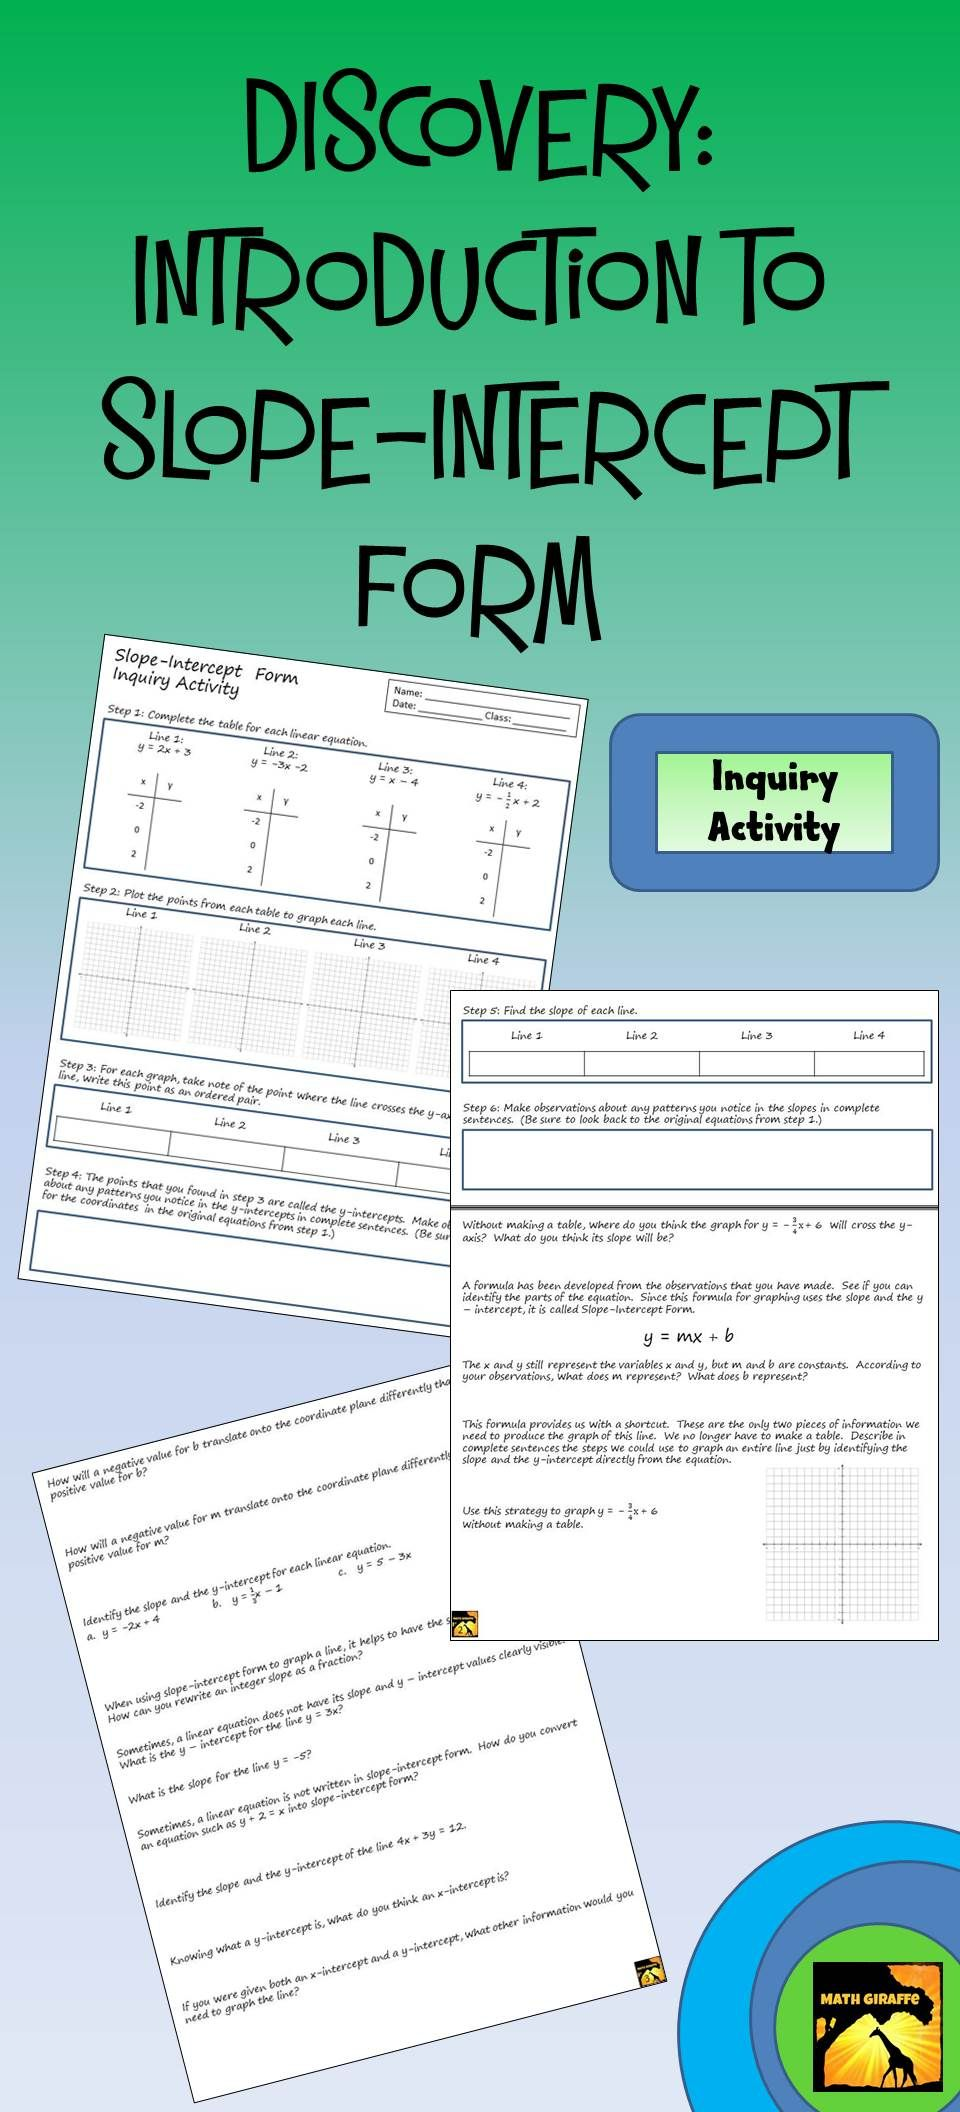 Slope intercept form inquiry activity discovery students and math introducing students to slope intercept form through guided discovery inquiry based lesson falaconquin